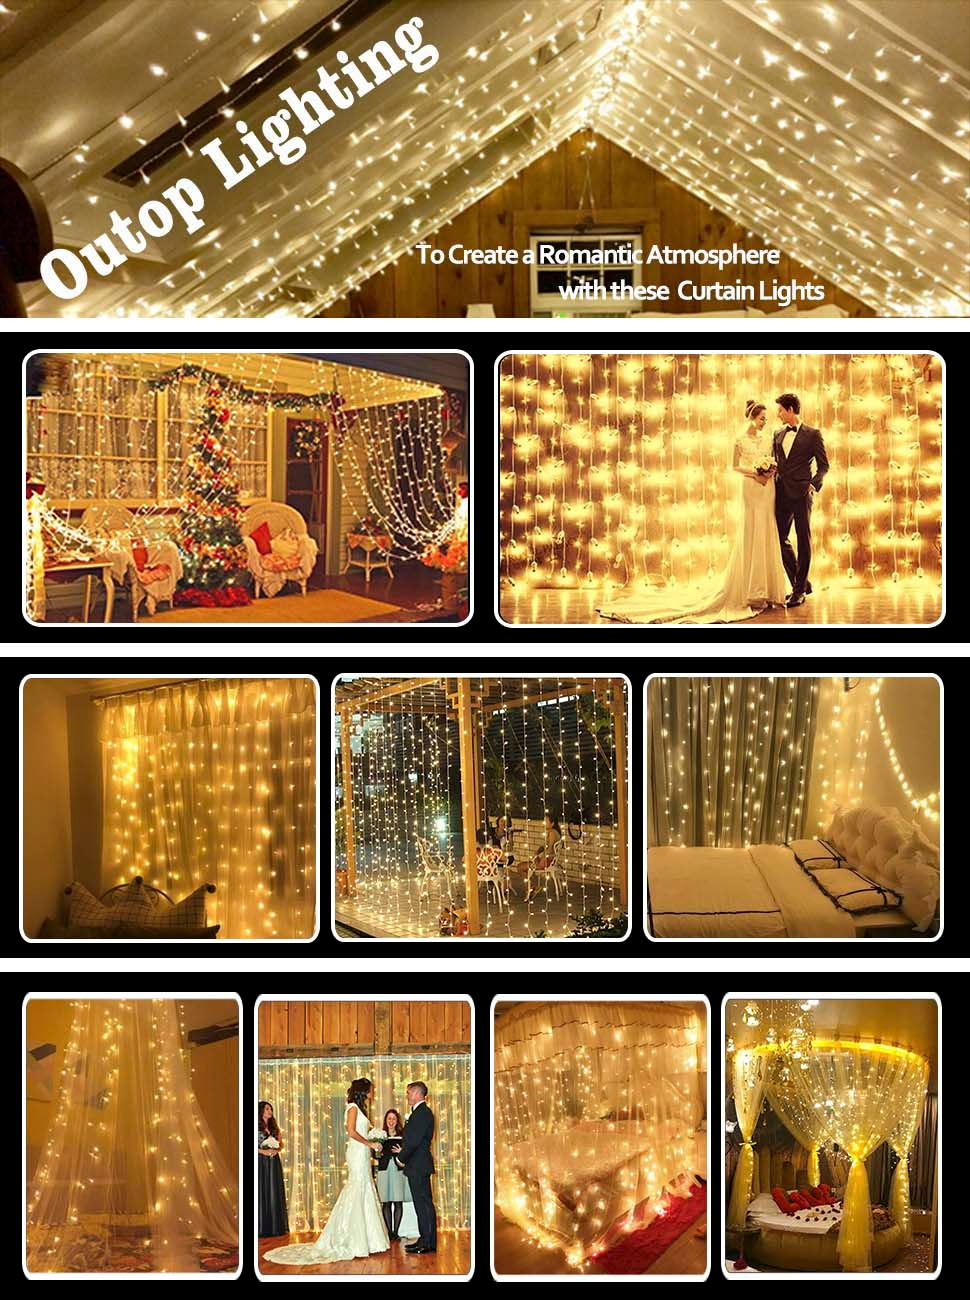 Amazon Outop Window Curtain Lights 304led 98ft 8 Modes Fairy